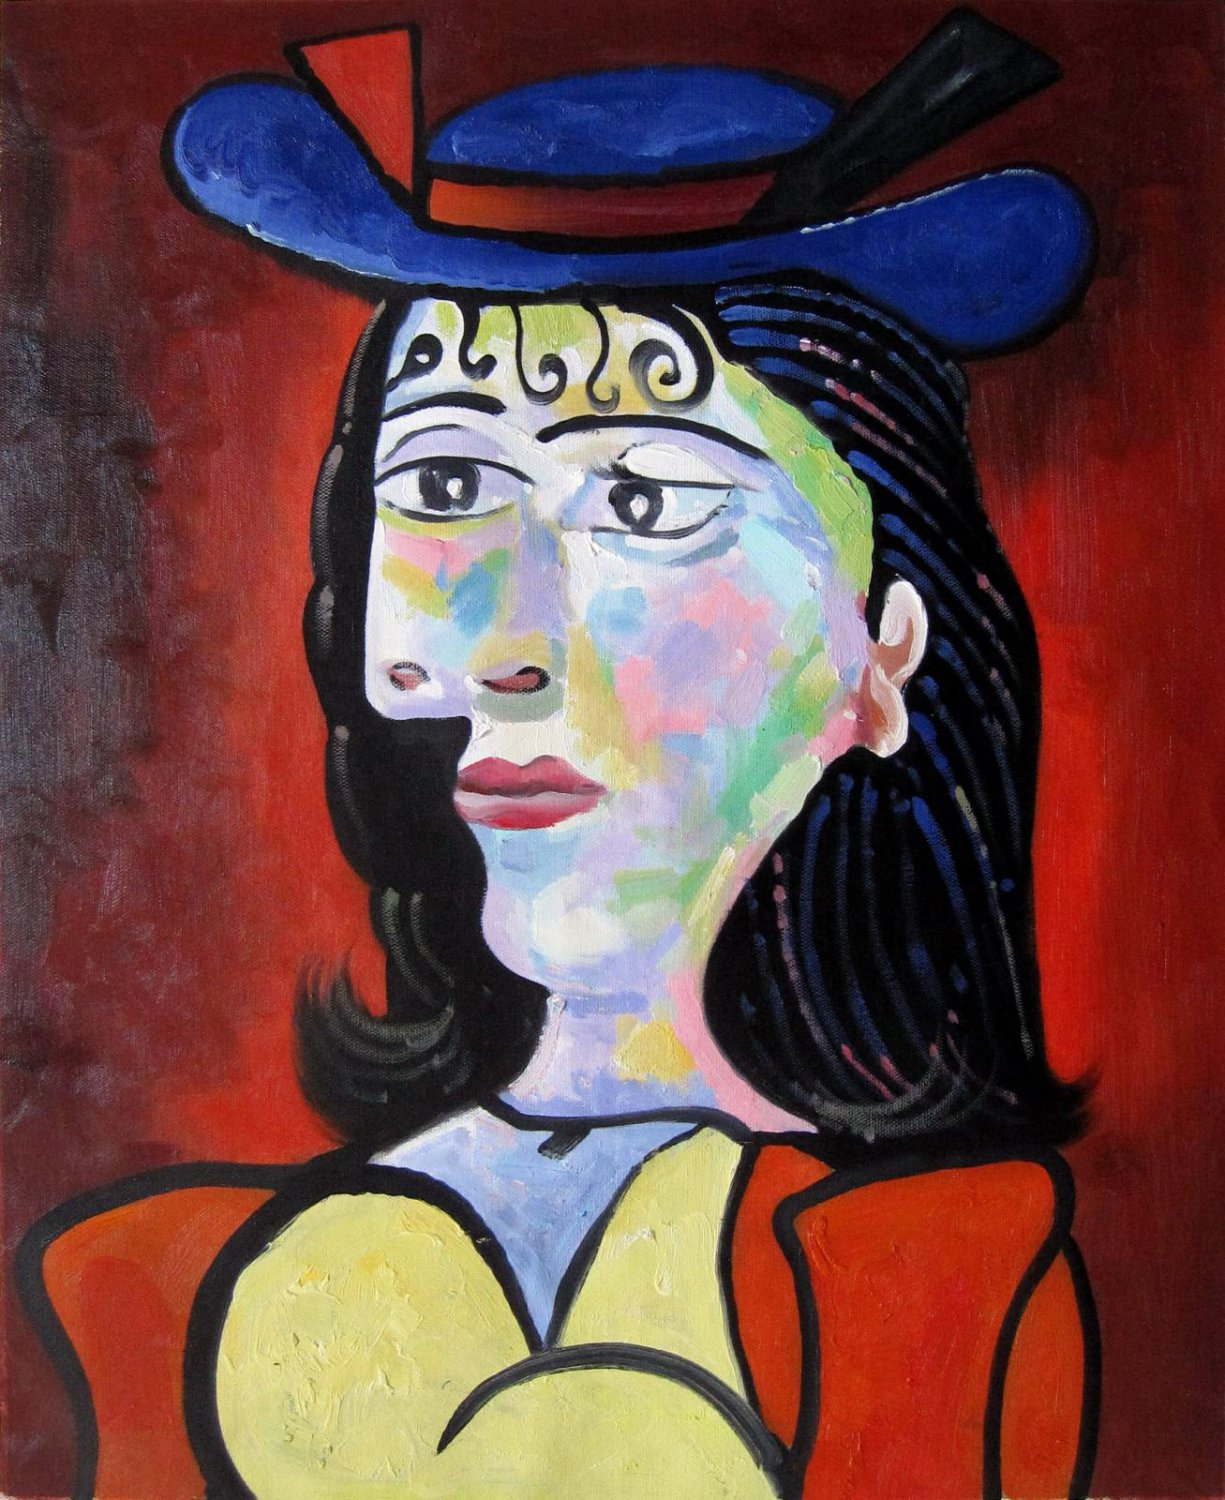 Rep. Pablo Picasso 16x20 in. stretched Oil Painting Canvas Art Wall Decor modern09D